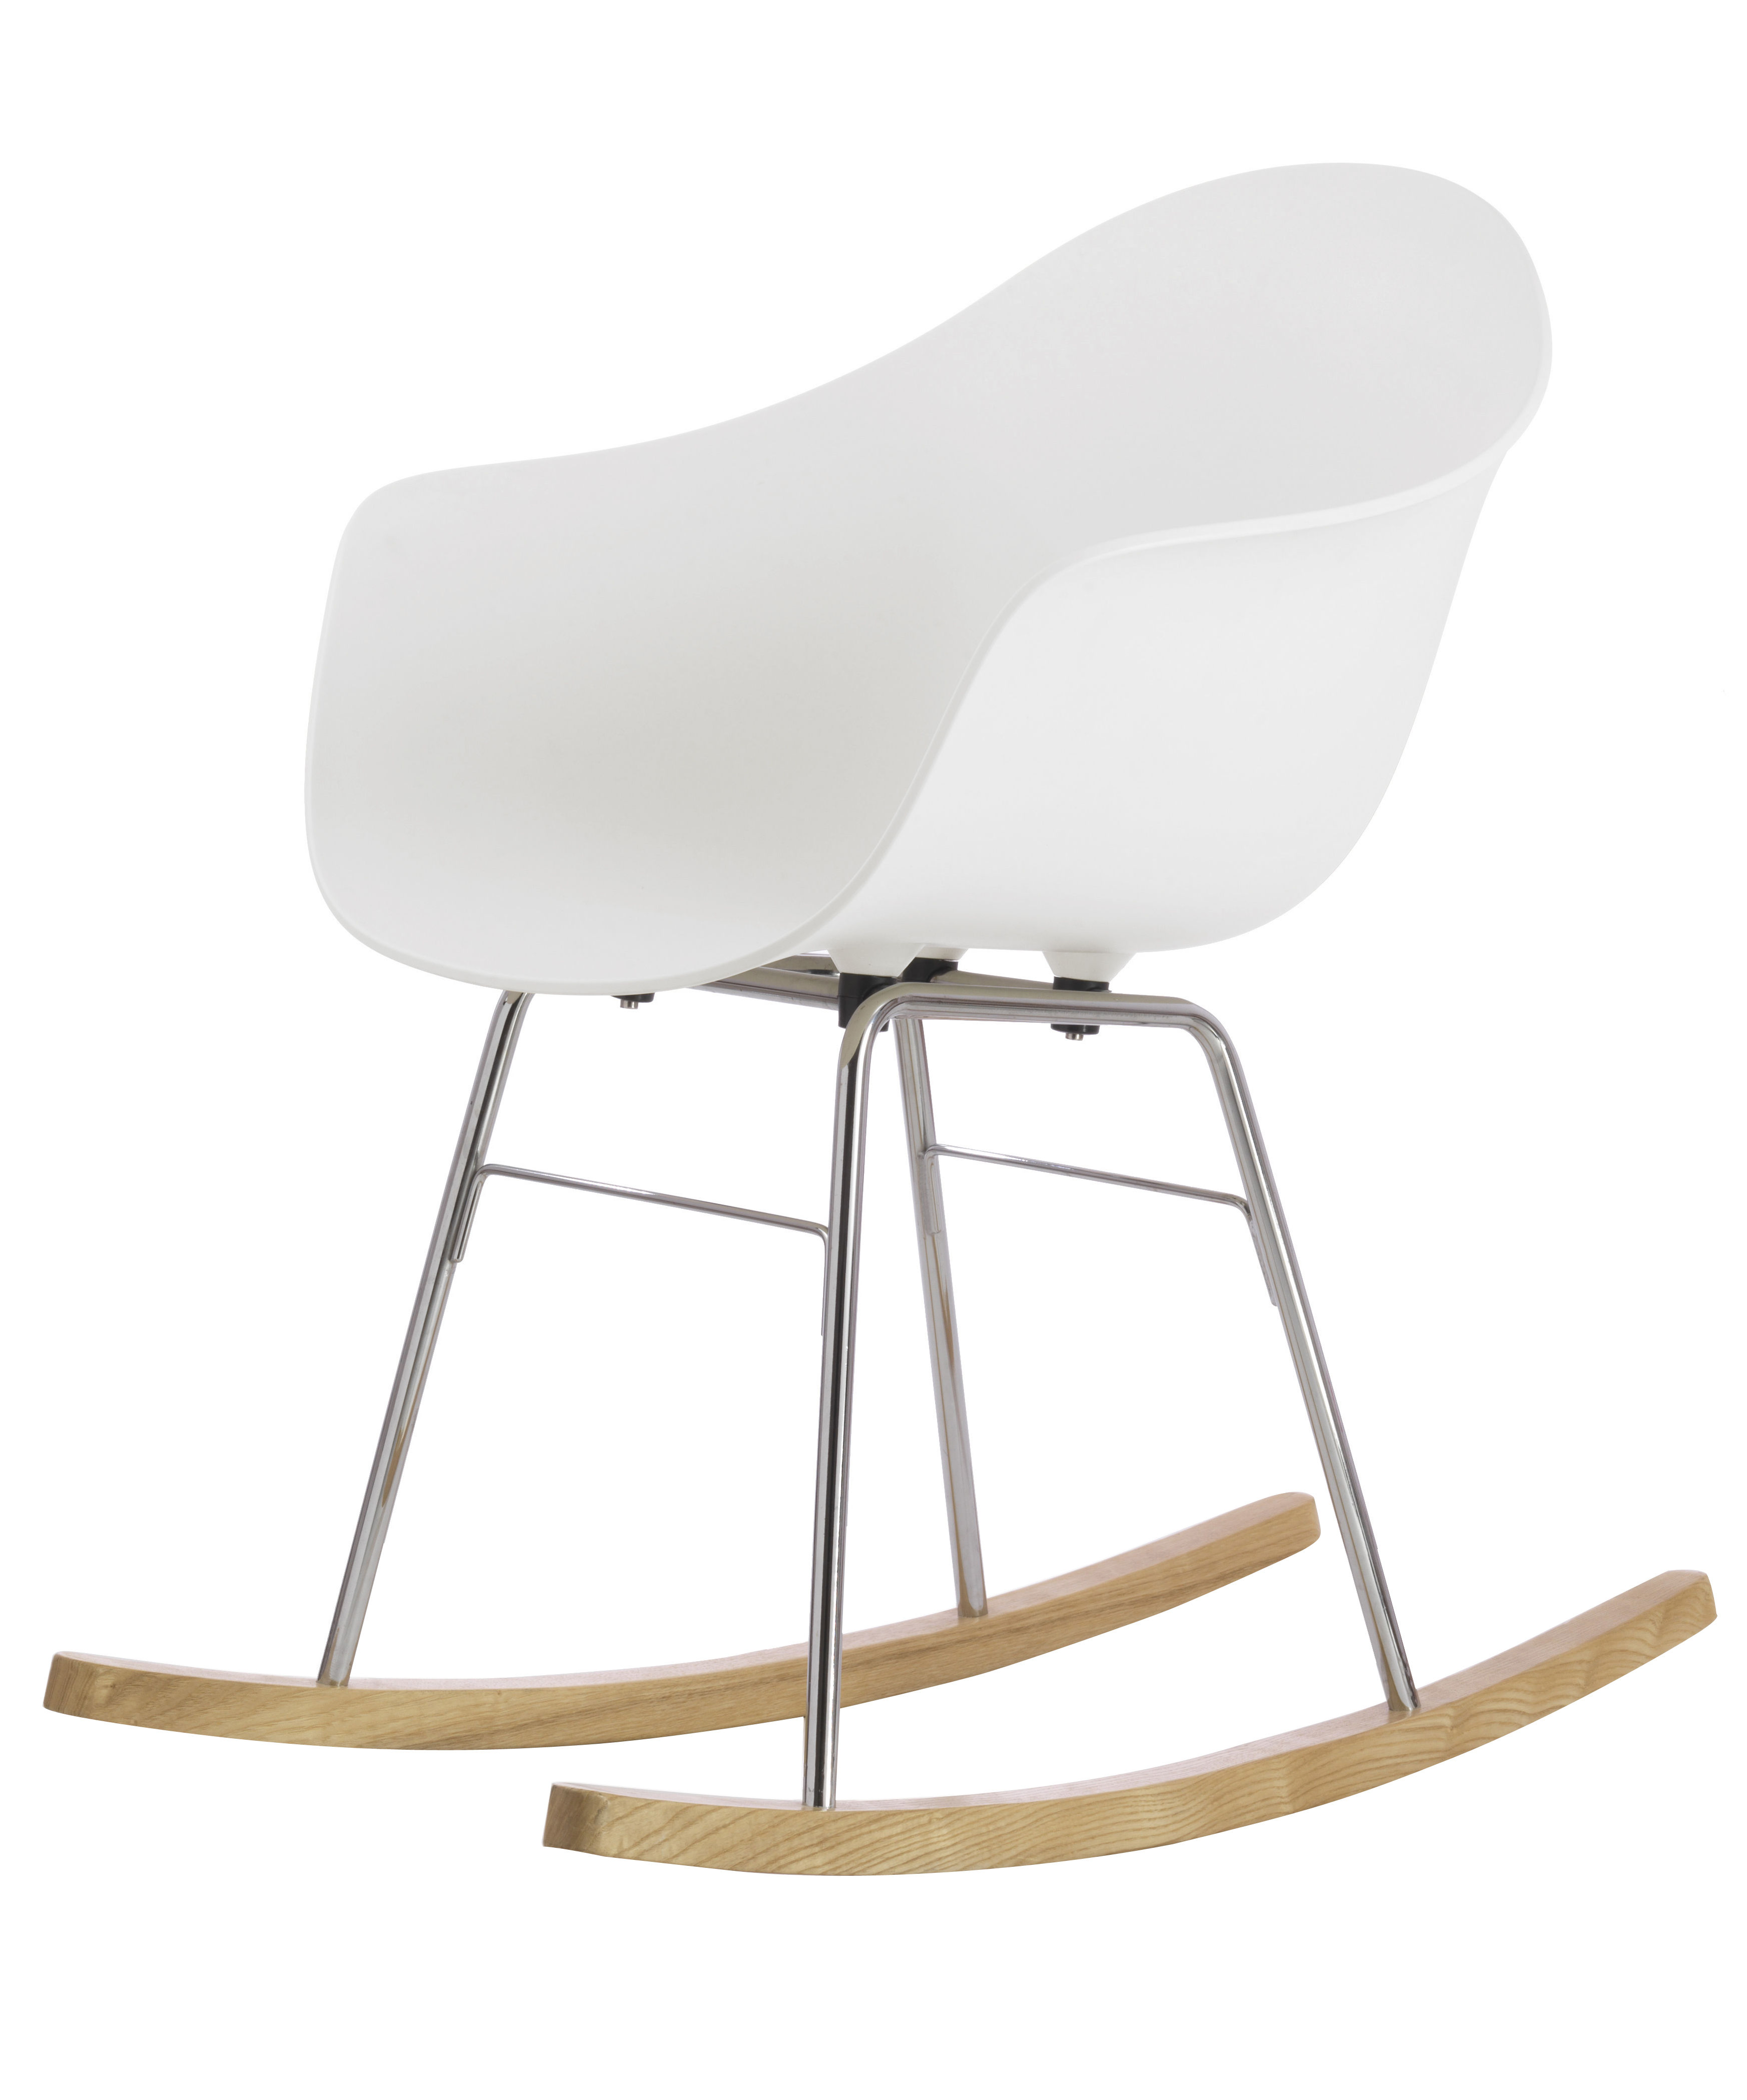 Furniture - Armchairs - TA Rocking chair - Wood sledge by Toou - White / Chromed & wood sledges - Chromed metal, Natural oak, Polypropylene